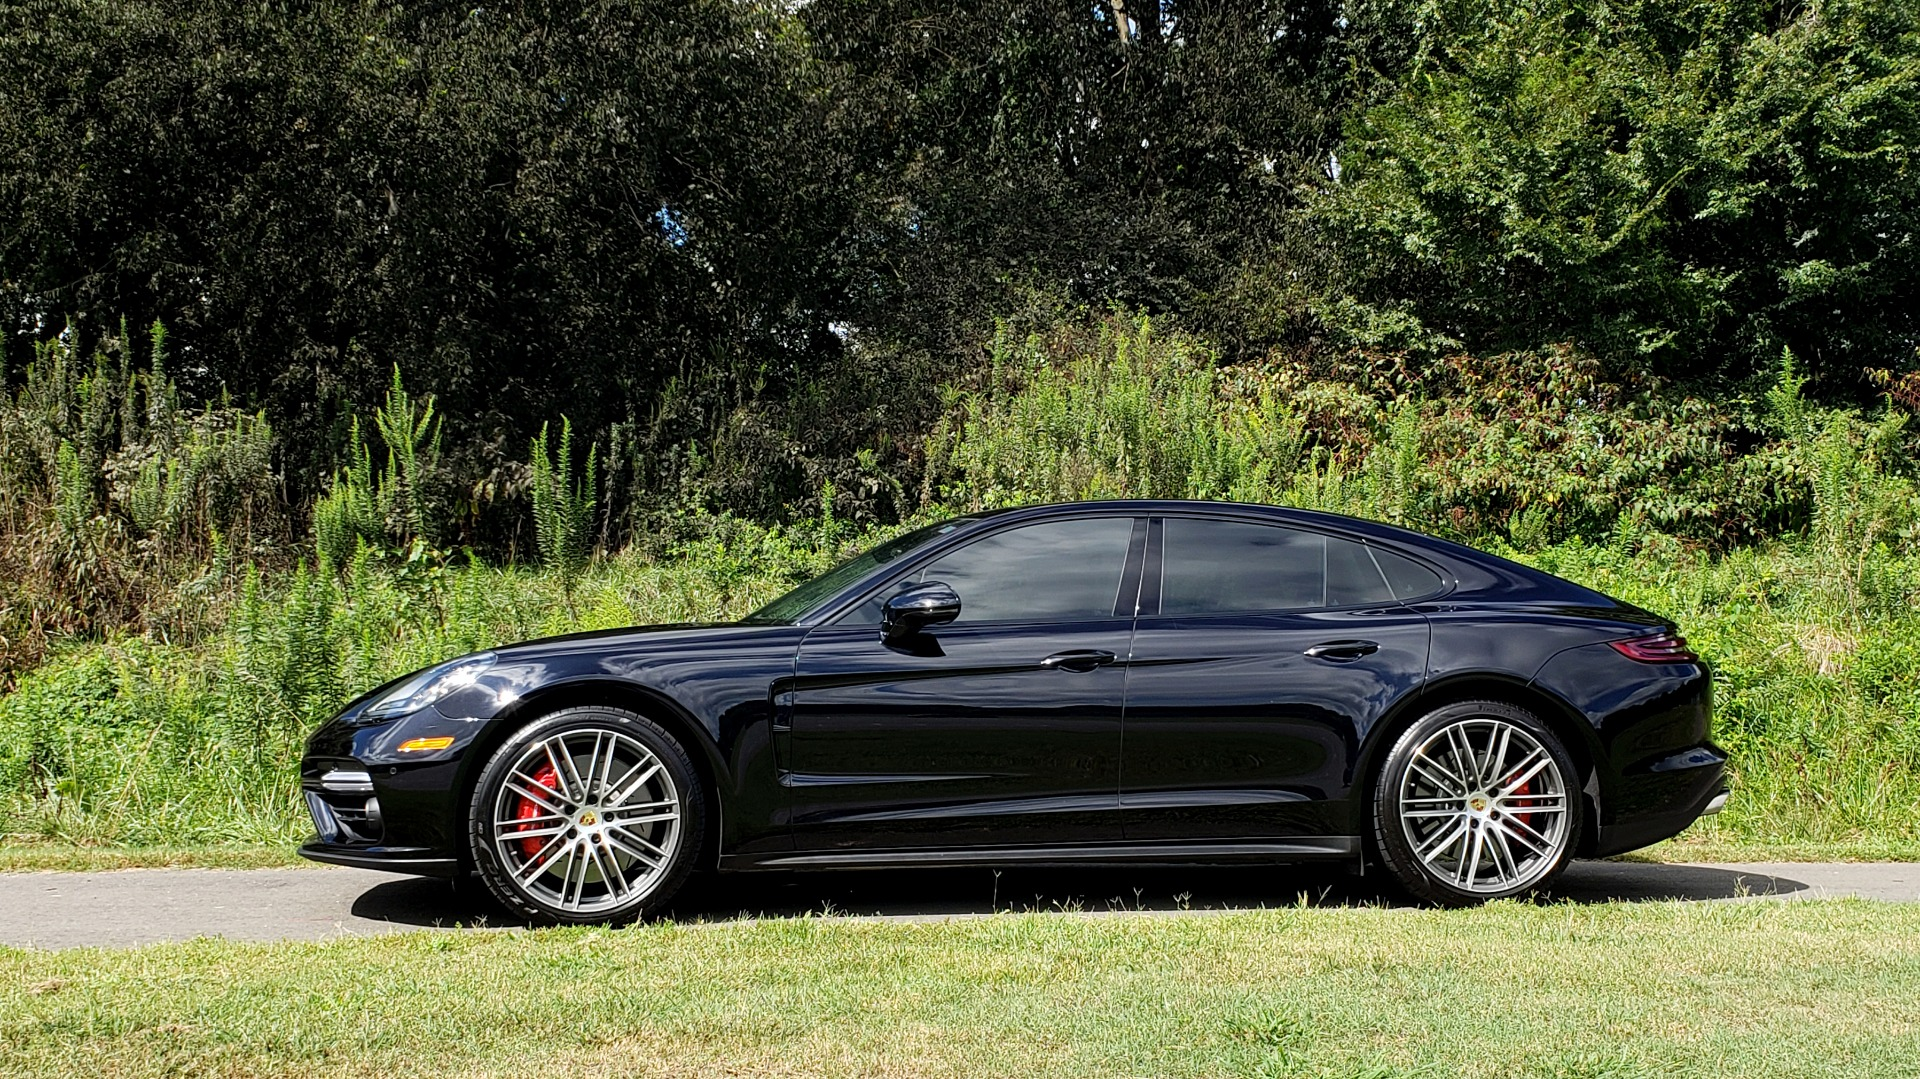 Used 2017 Porsche PANAMERA TURBO AWD / 4.0L V8 / AUTO / NAV / BOSE / REARVIEW / 21IN WHEELS for sale $98,995 at Formula Imports in Charlotte NC 28227 4